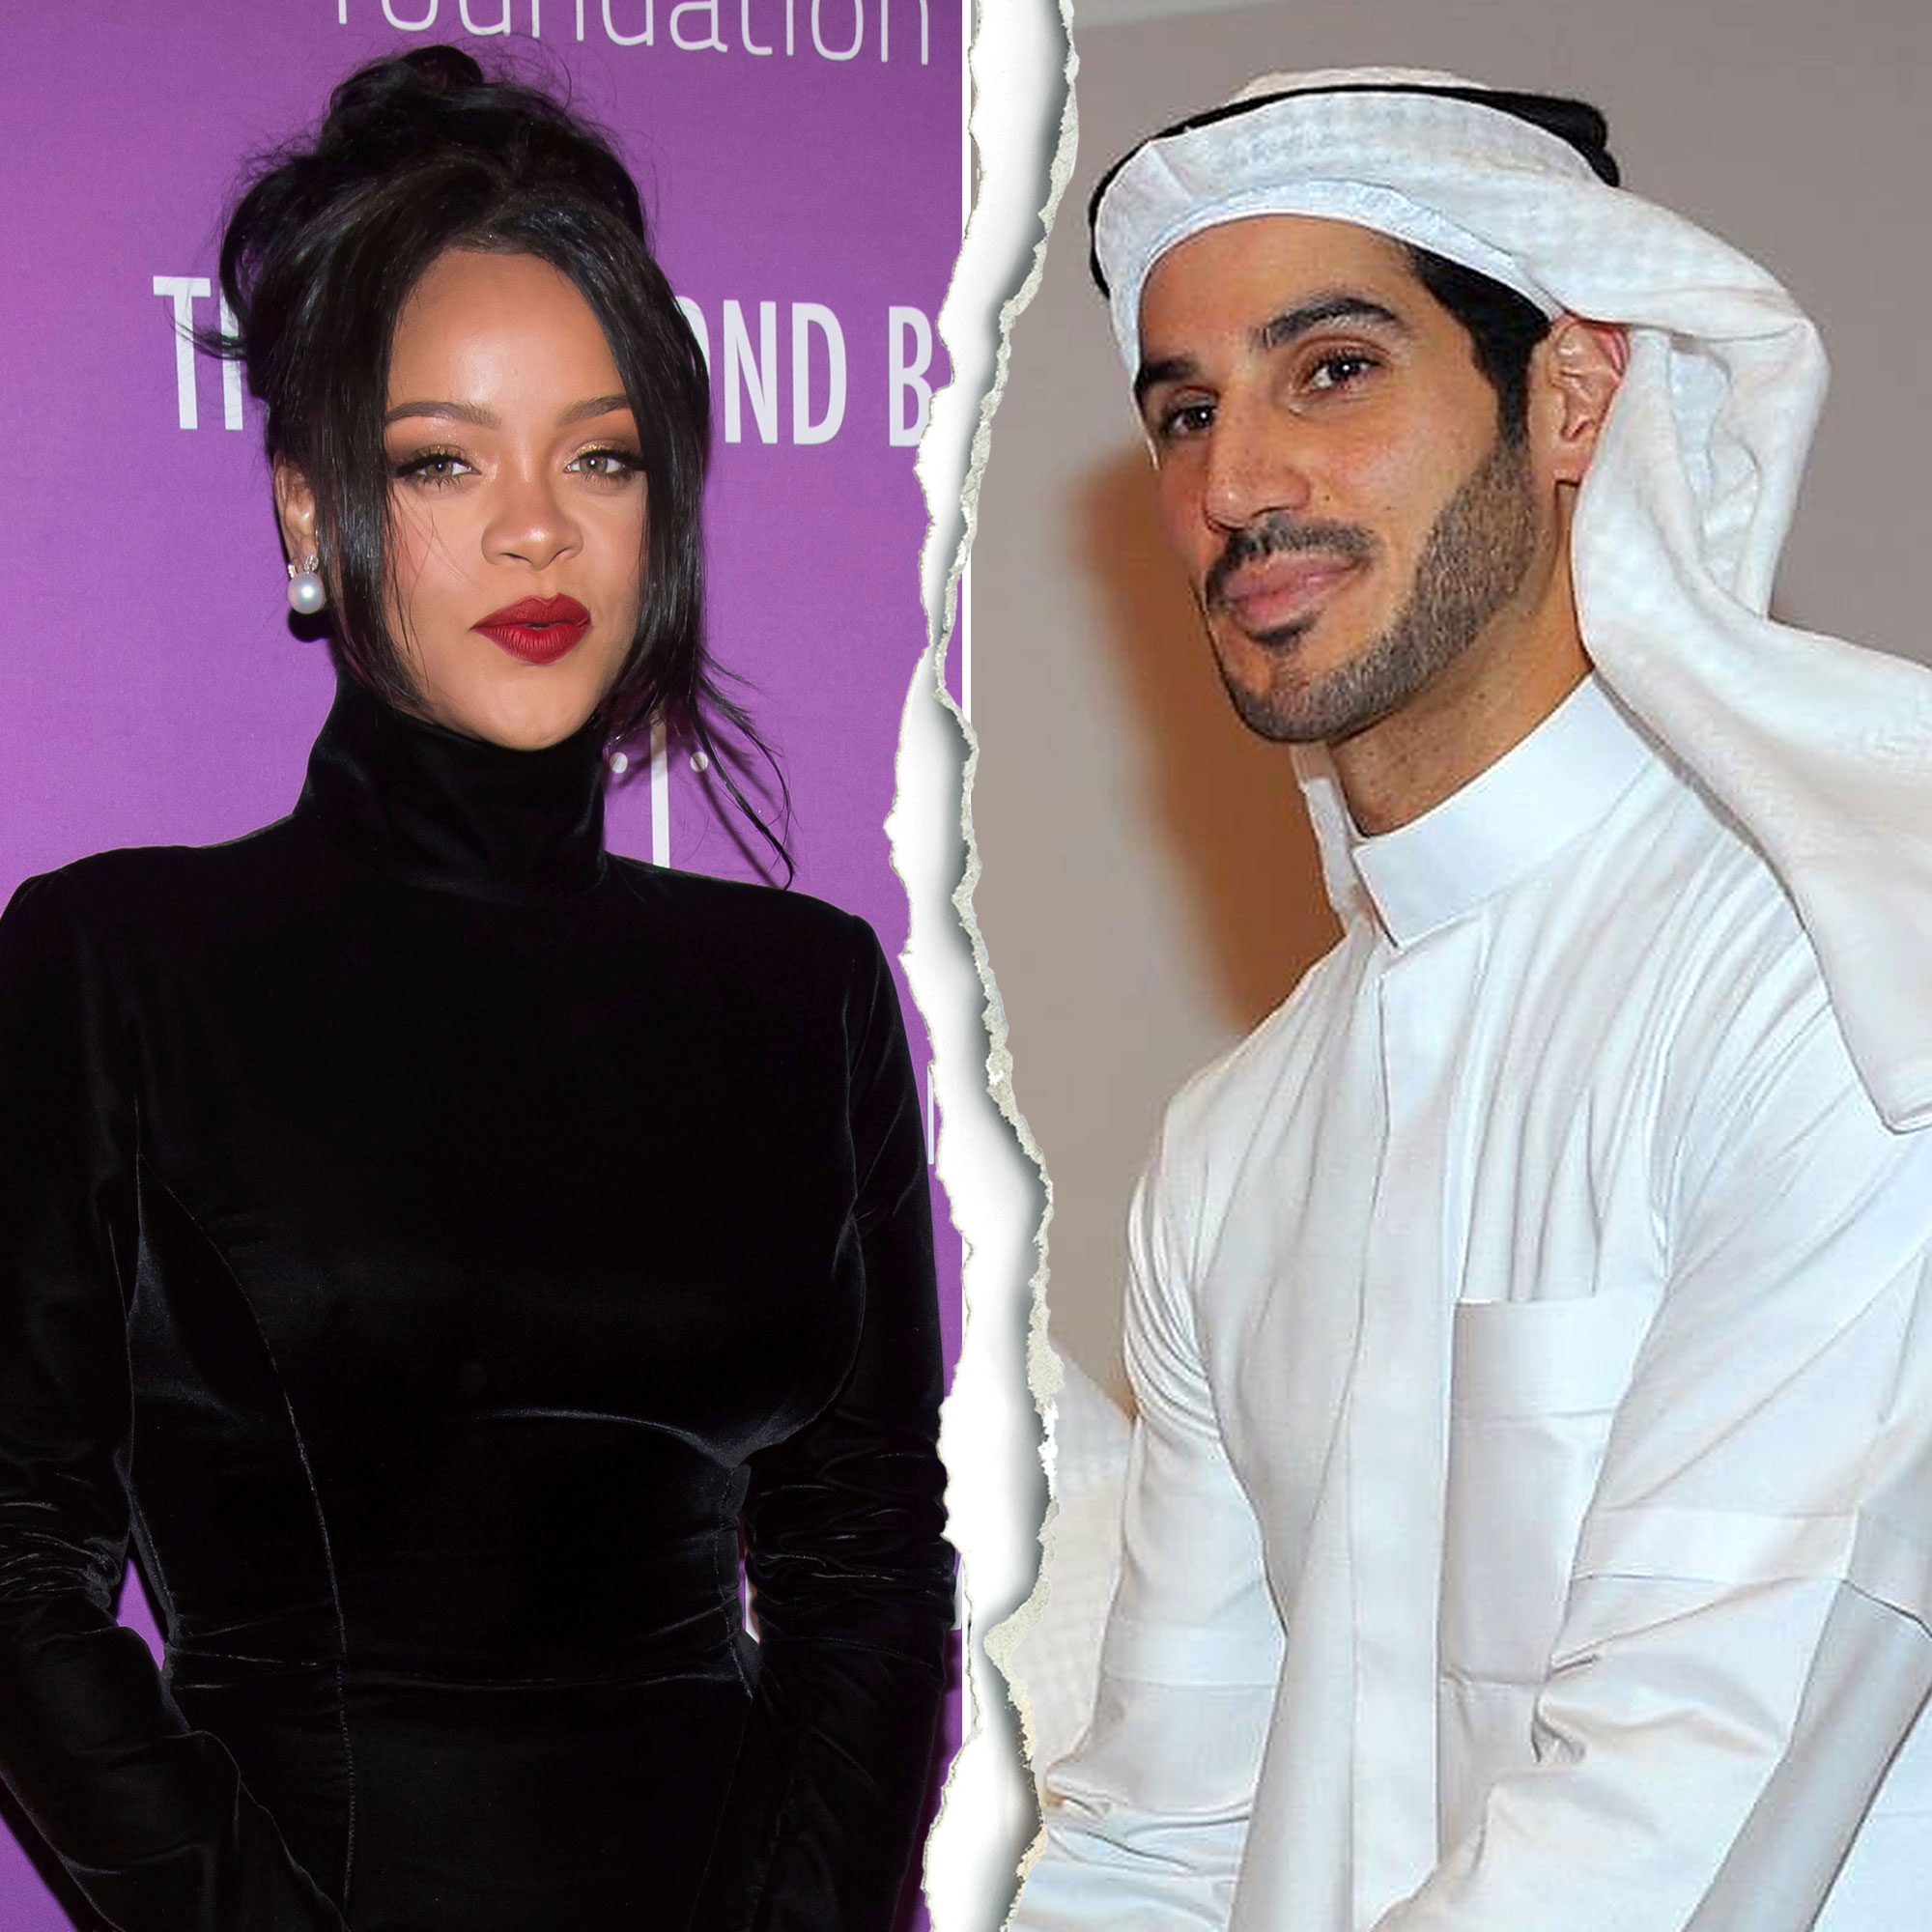 Rihanna and Hassan Jameel Split After Nearly 3 Years of Dating